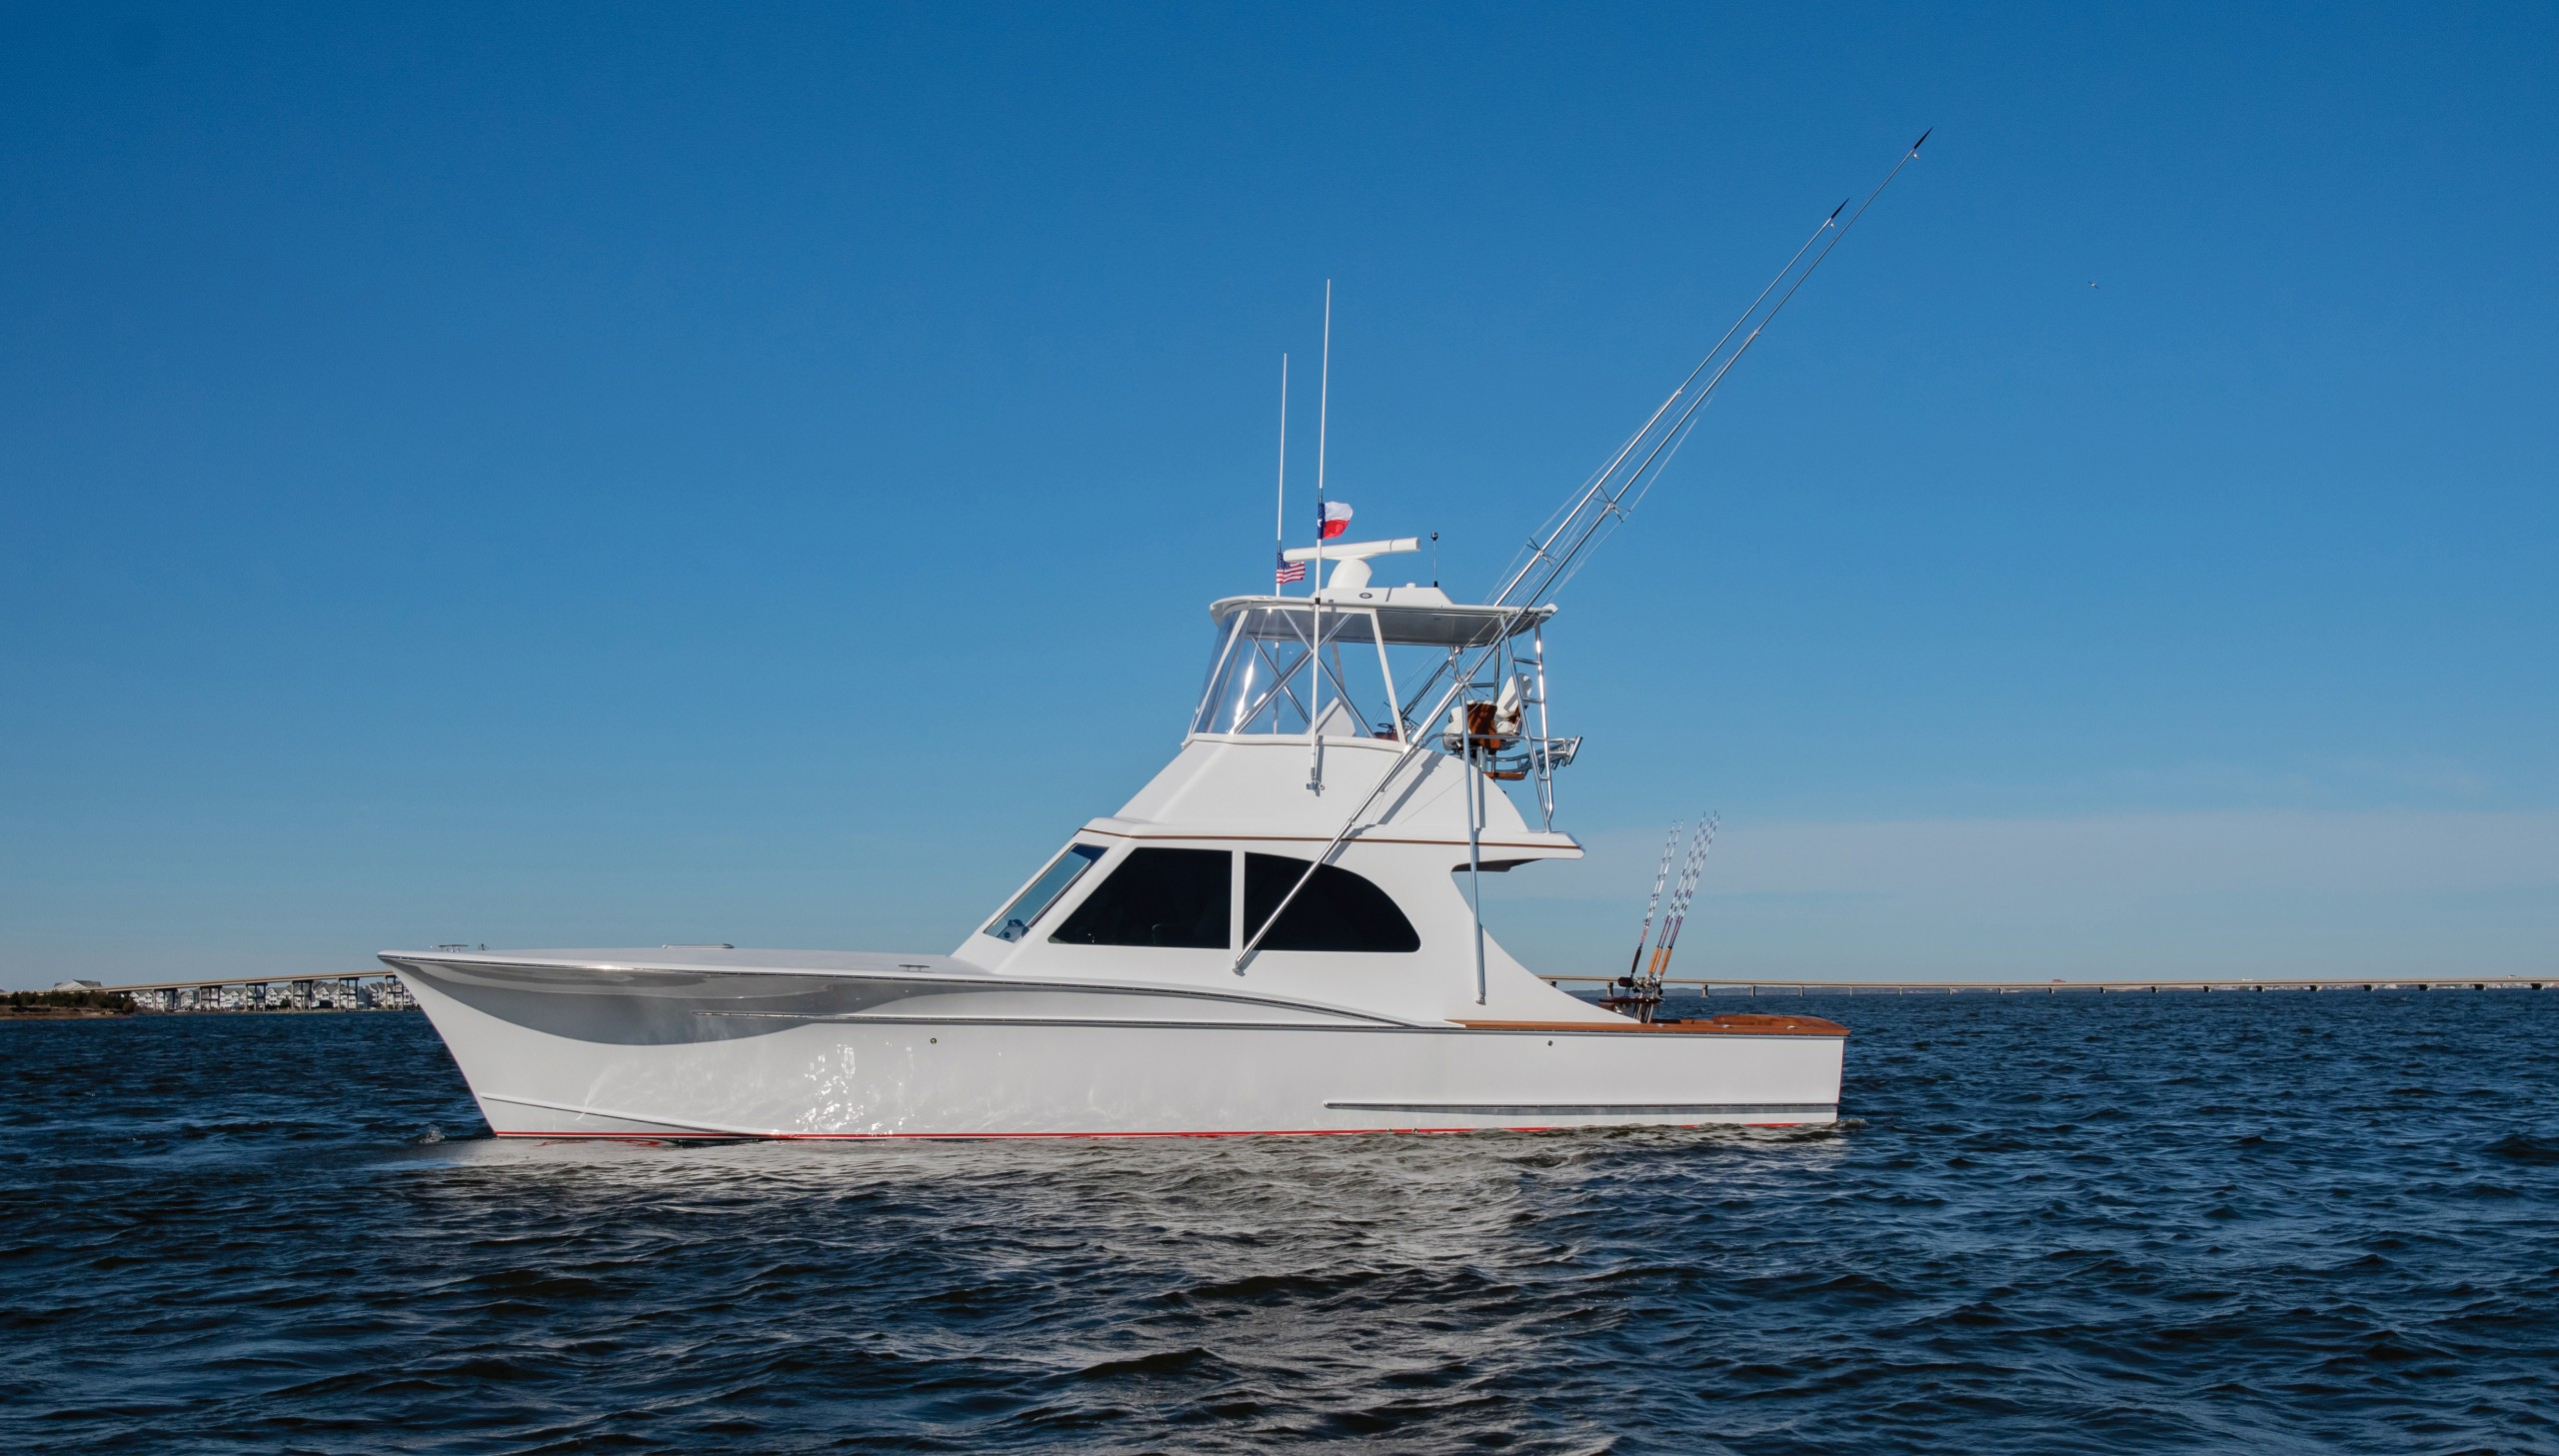 Harrison 41 – A Modern Sportfisher That Tips Its Hat to The Classics